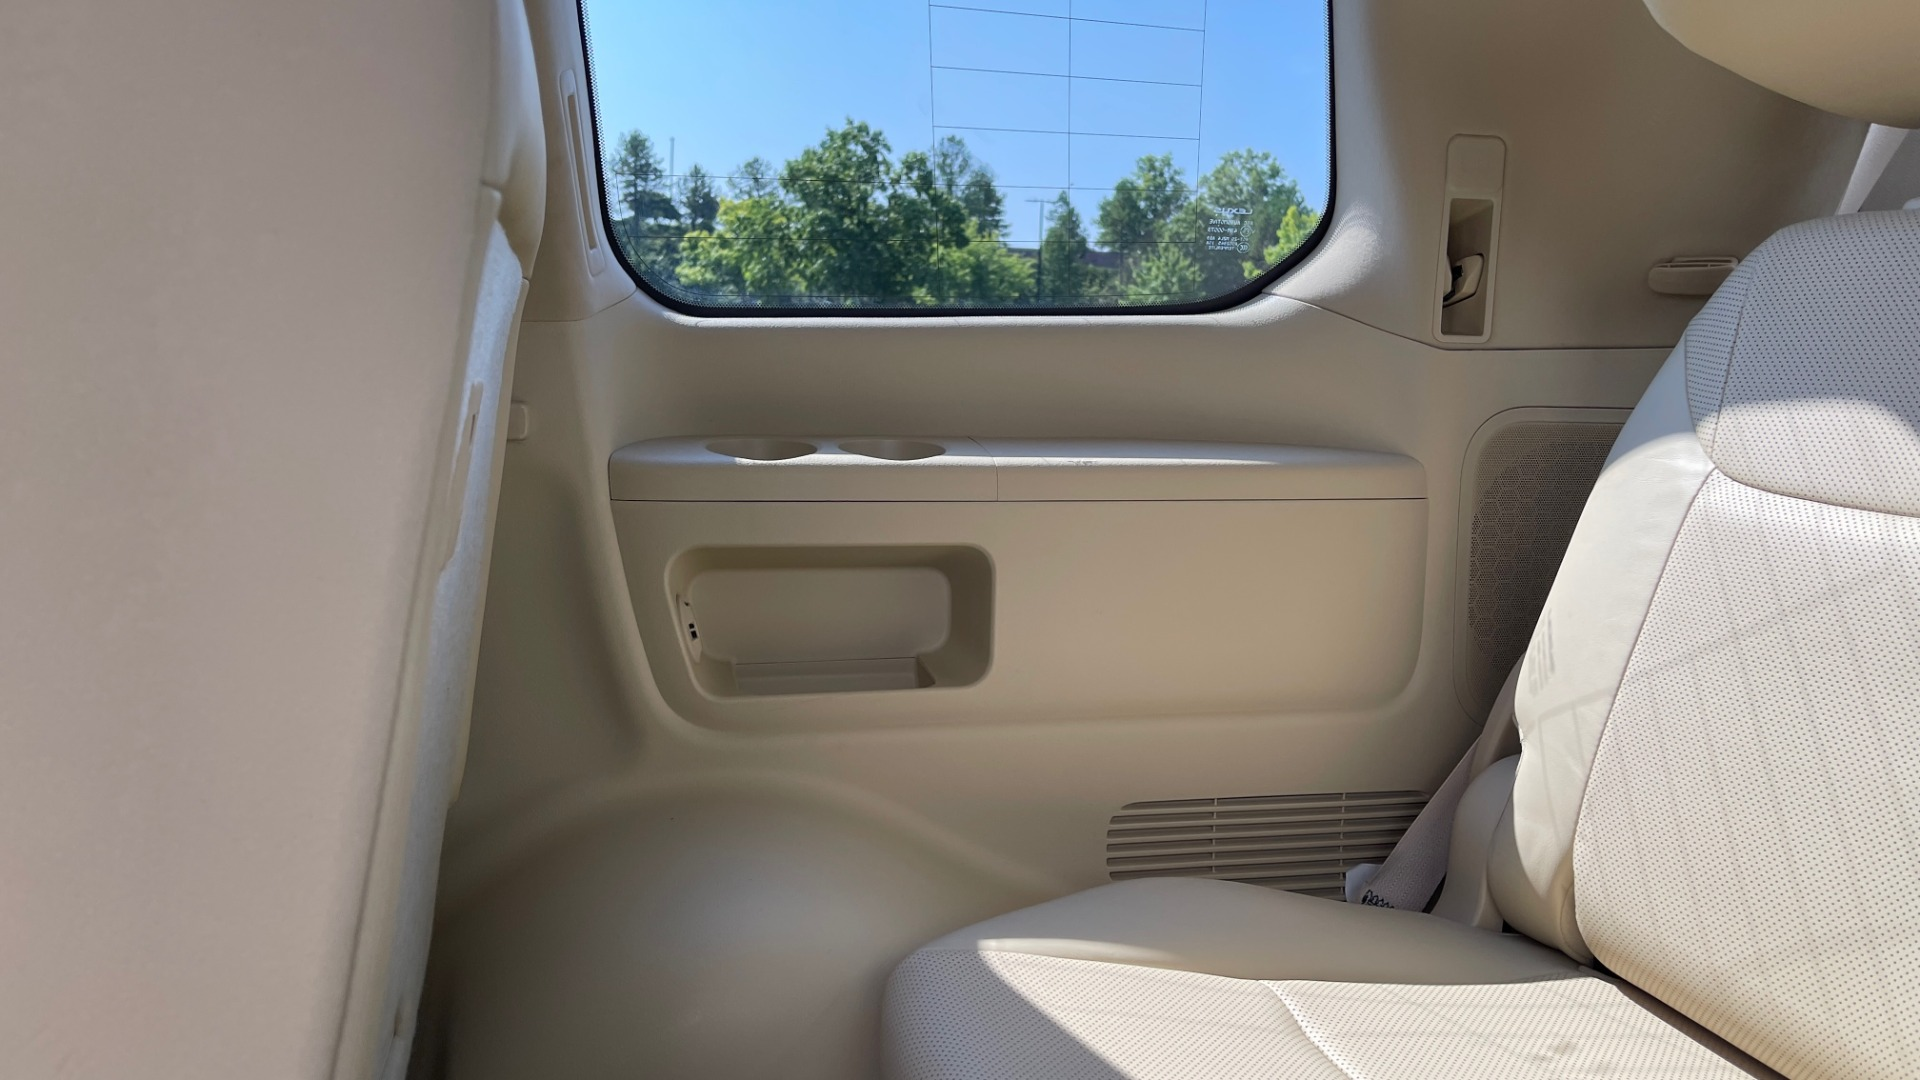 Used 2017 Lexus LX 570 LUXURY / 5.7L V8 / NAV / SUNROOF / 3-ROW / DVD / REARVIEW for sale $63,995 at Formula Imports in Charlotte NC 28227 59